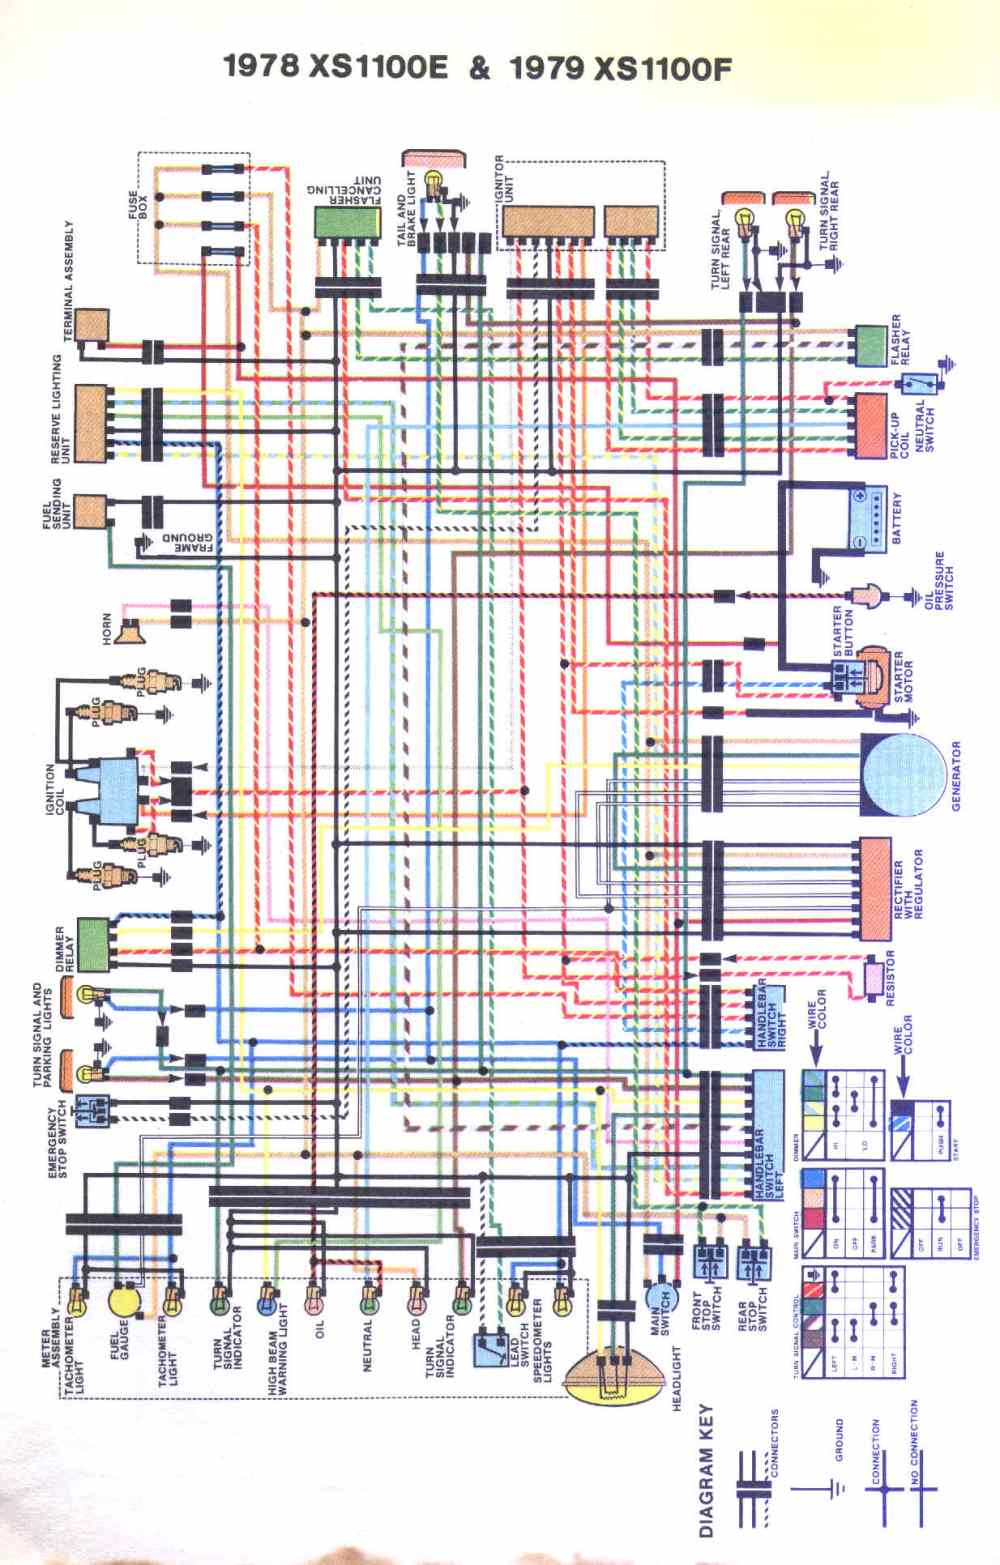 medium resolution of trans am wiring harness technical pdf for 1980 trans am and firebird1980 trans am wiring diagram